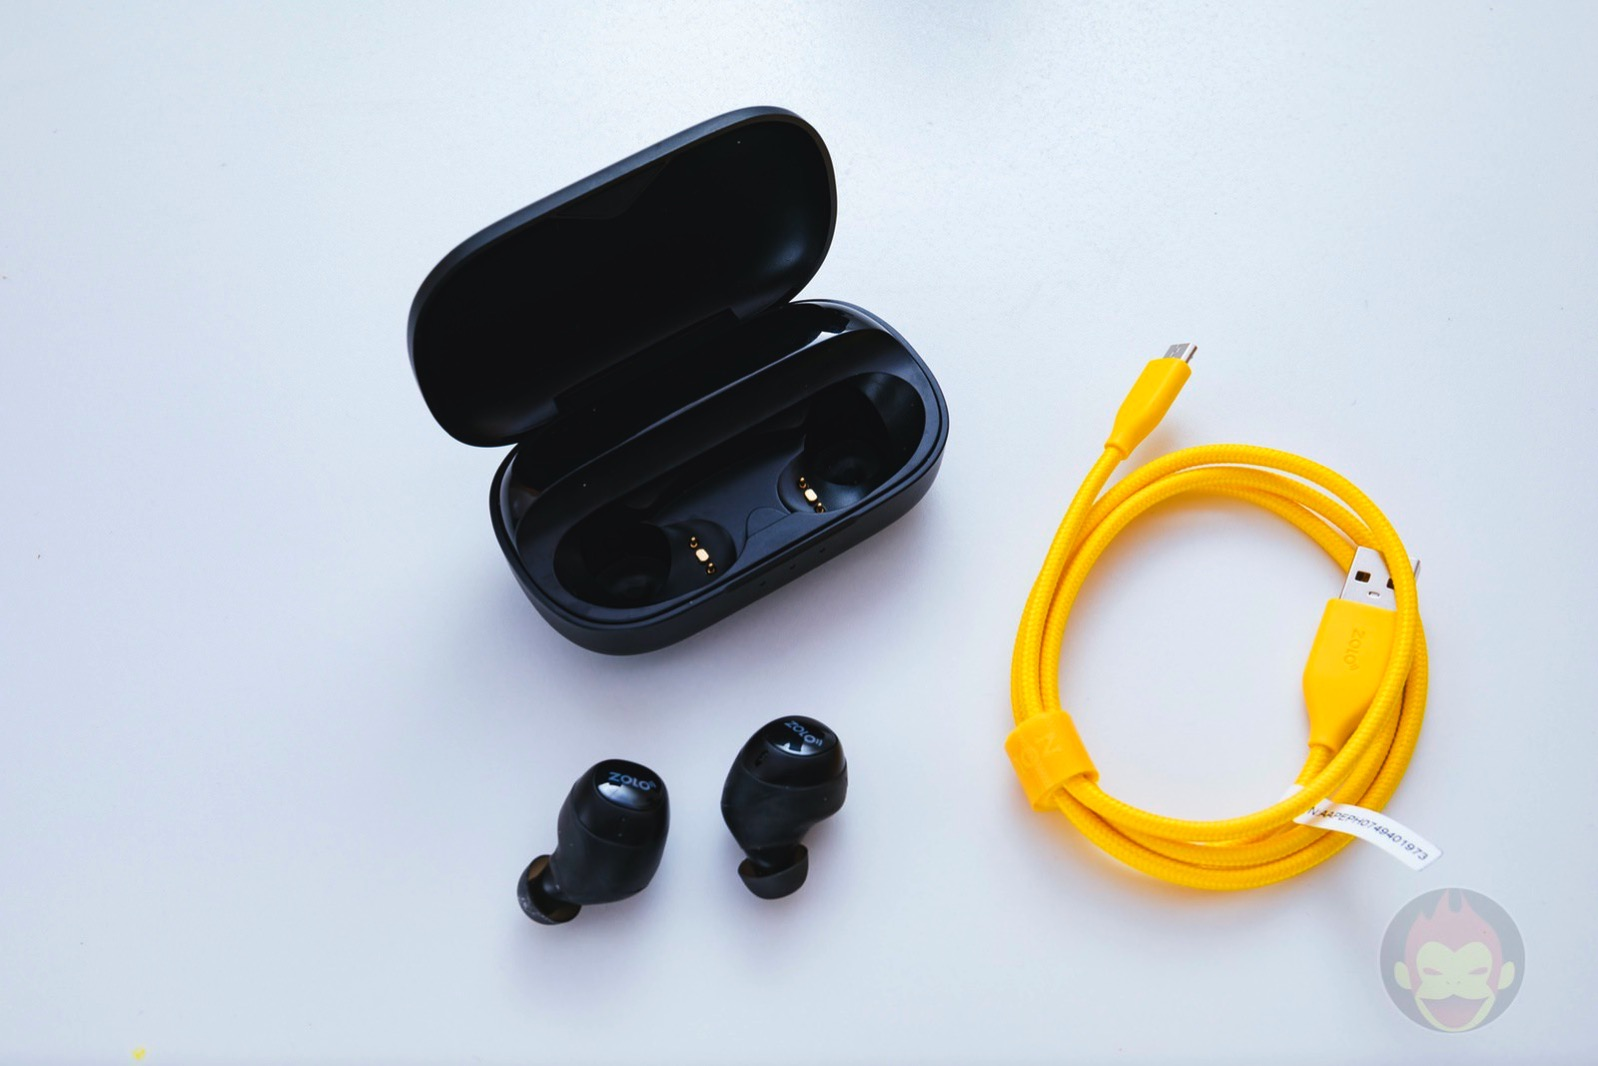 Zolo Liberty Zolo Liberty Plus Wireless Earphones 03